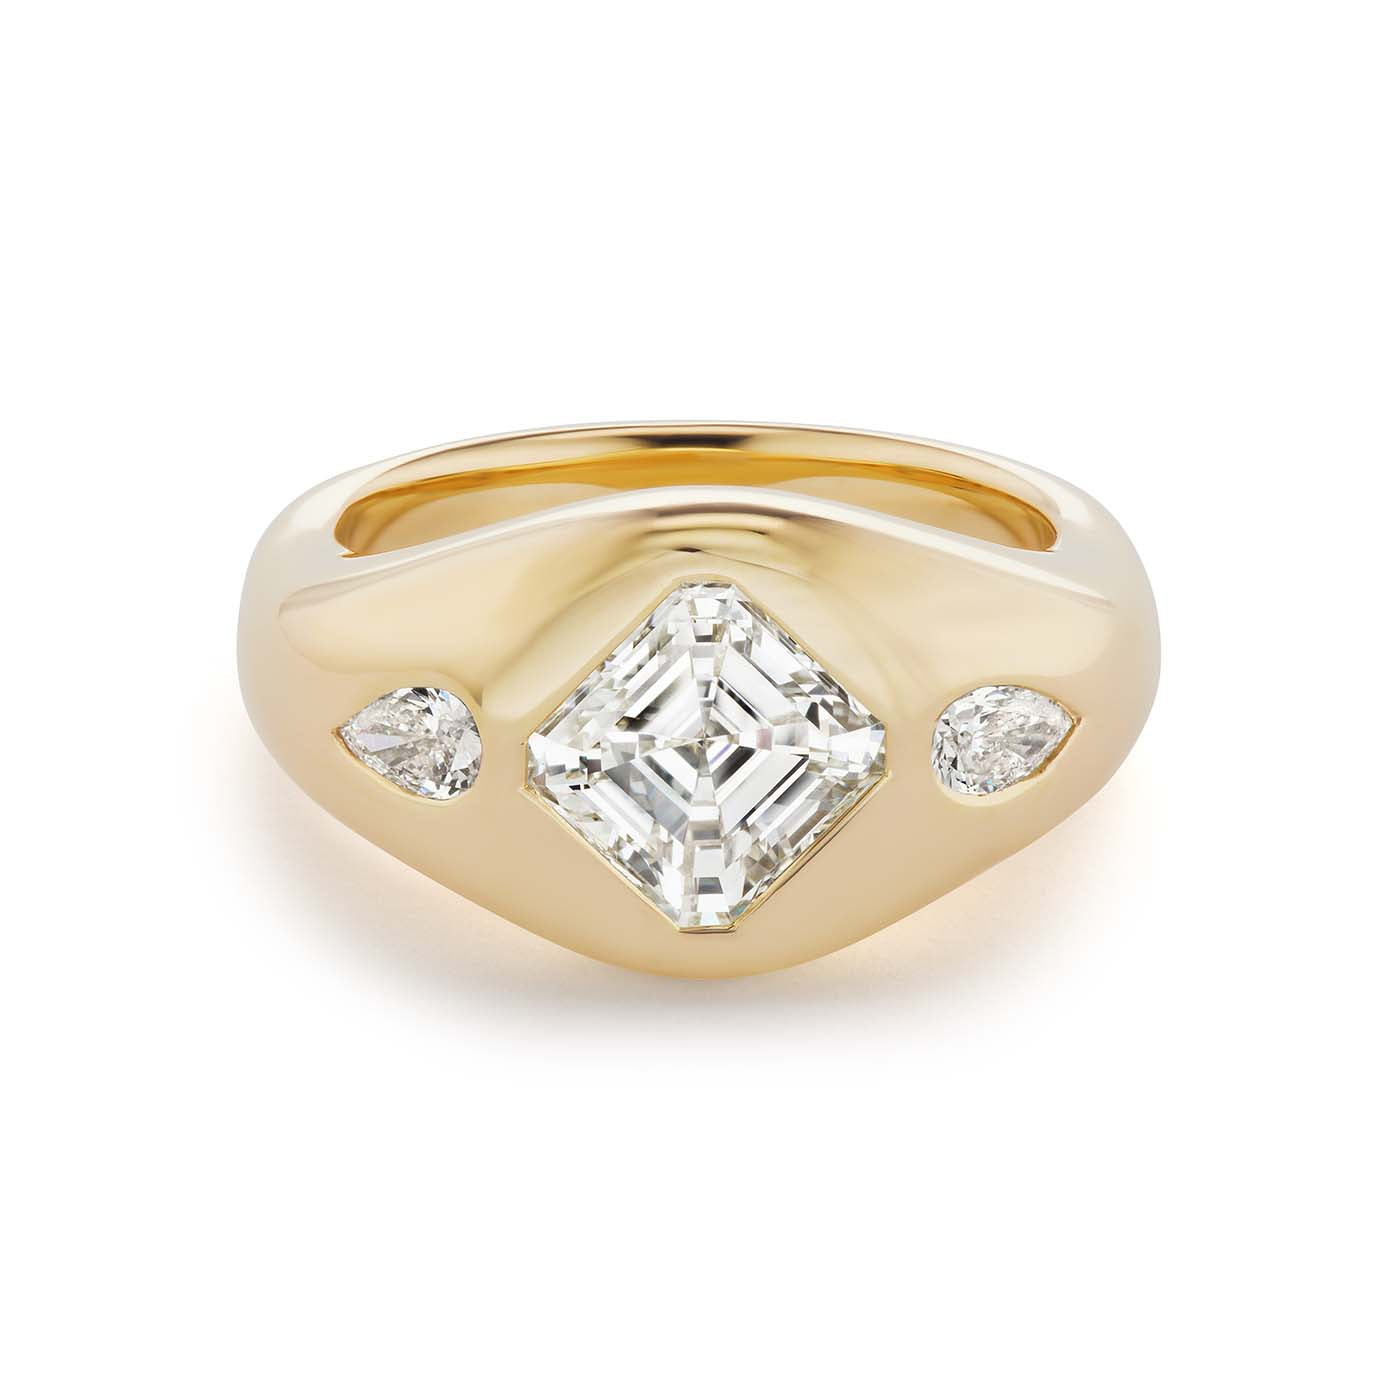 One-of-a-Kind Asscher Diamond Gypsy with Pear Sides